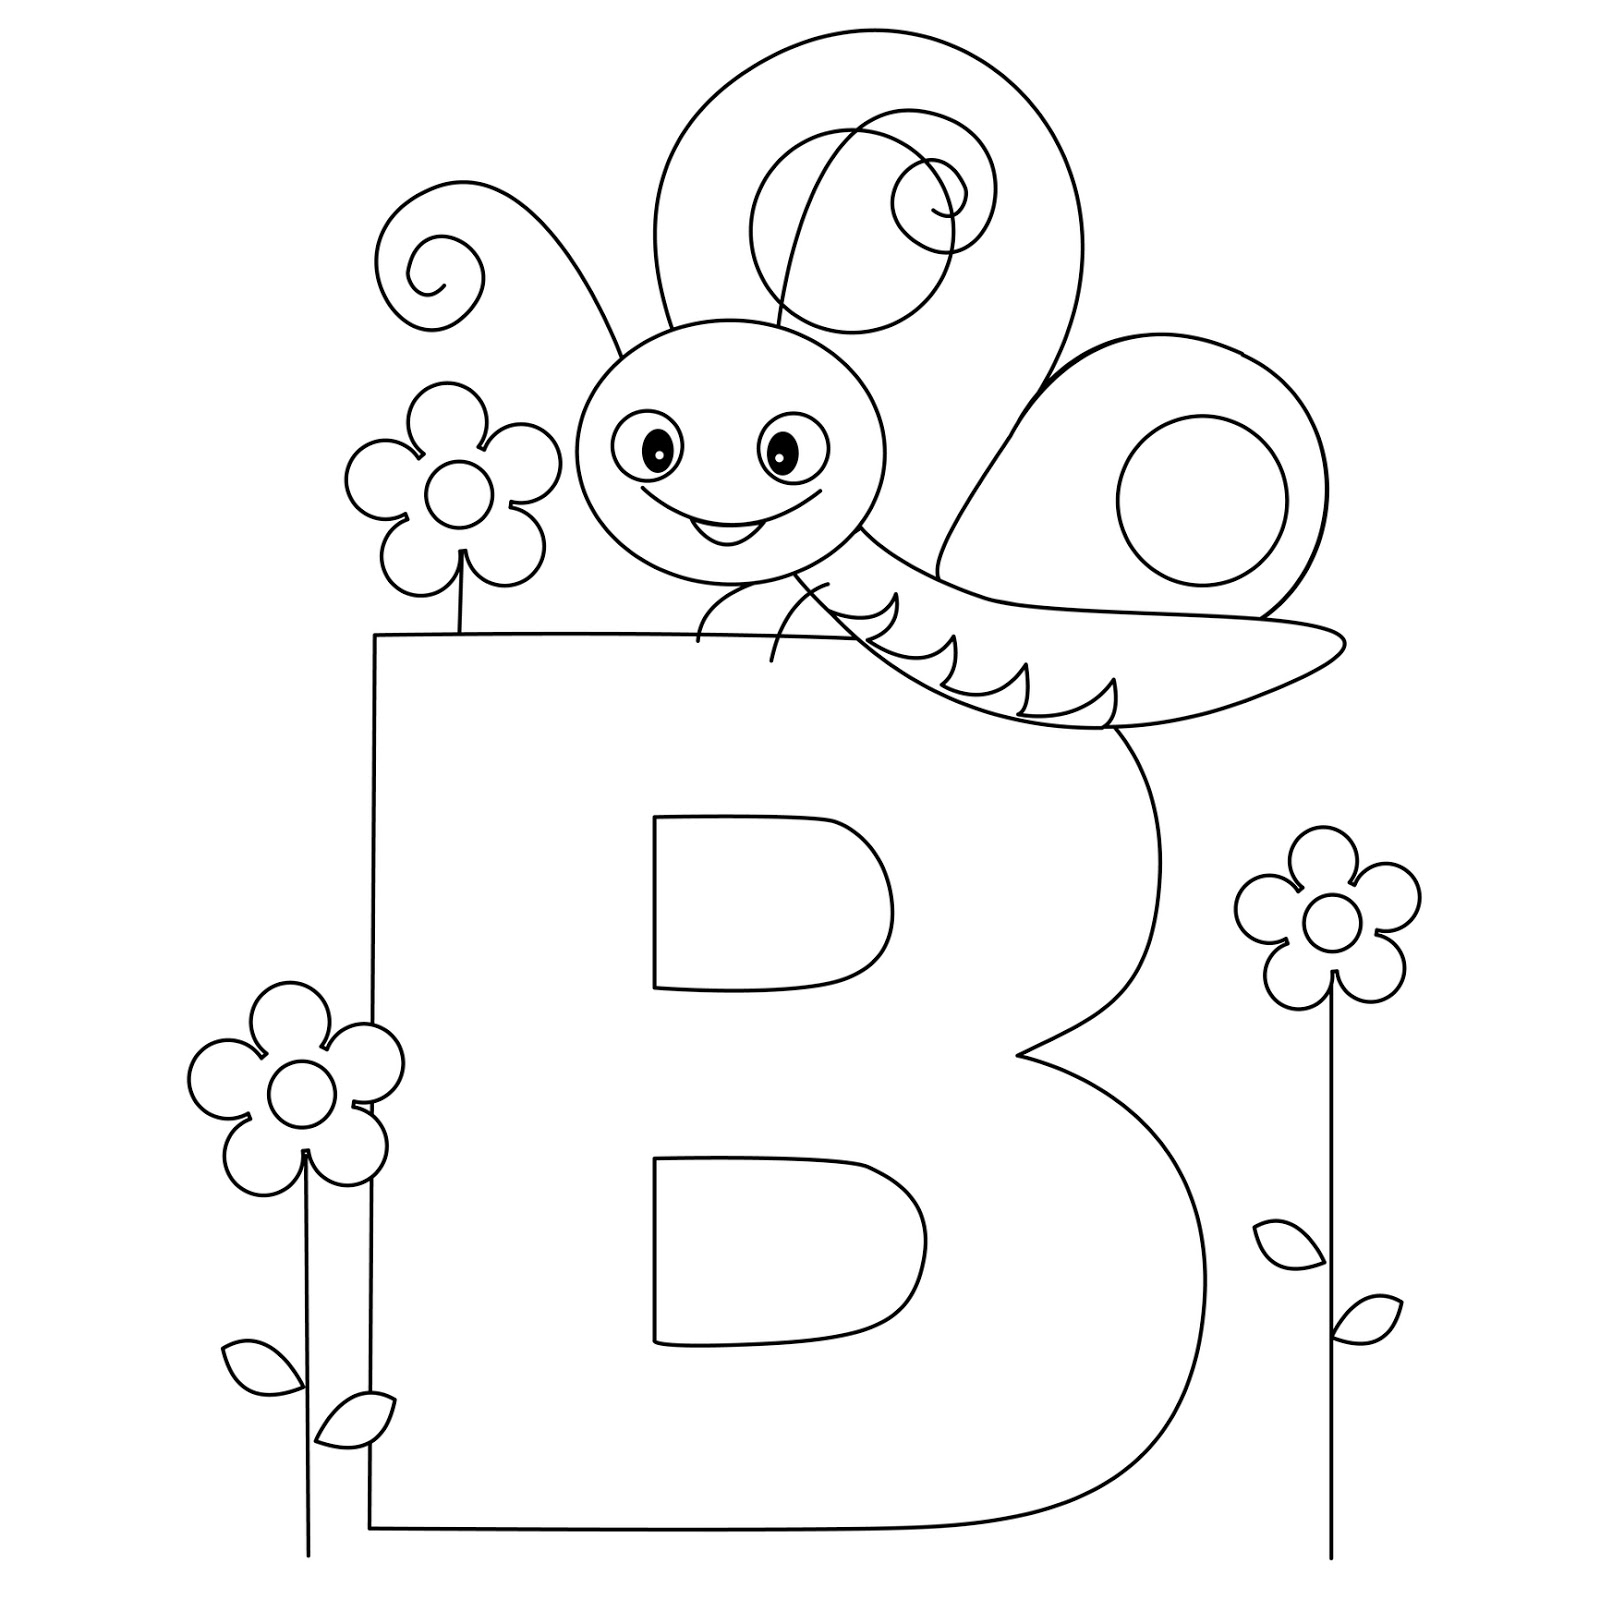 Coloring Pages Animals Letters : Animal alphabet letter b coloring butterfly